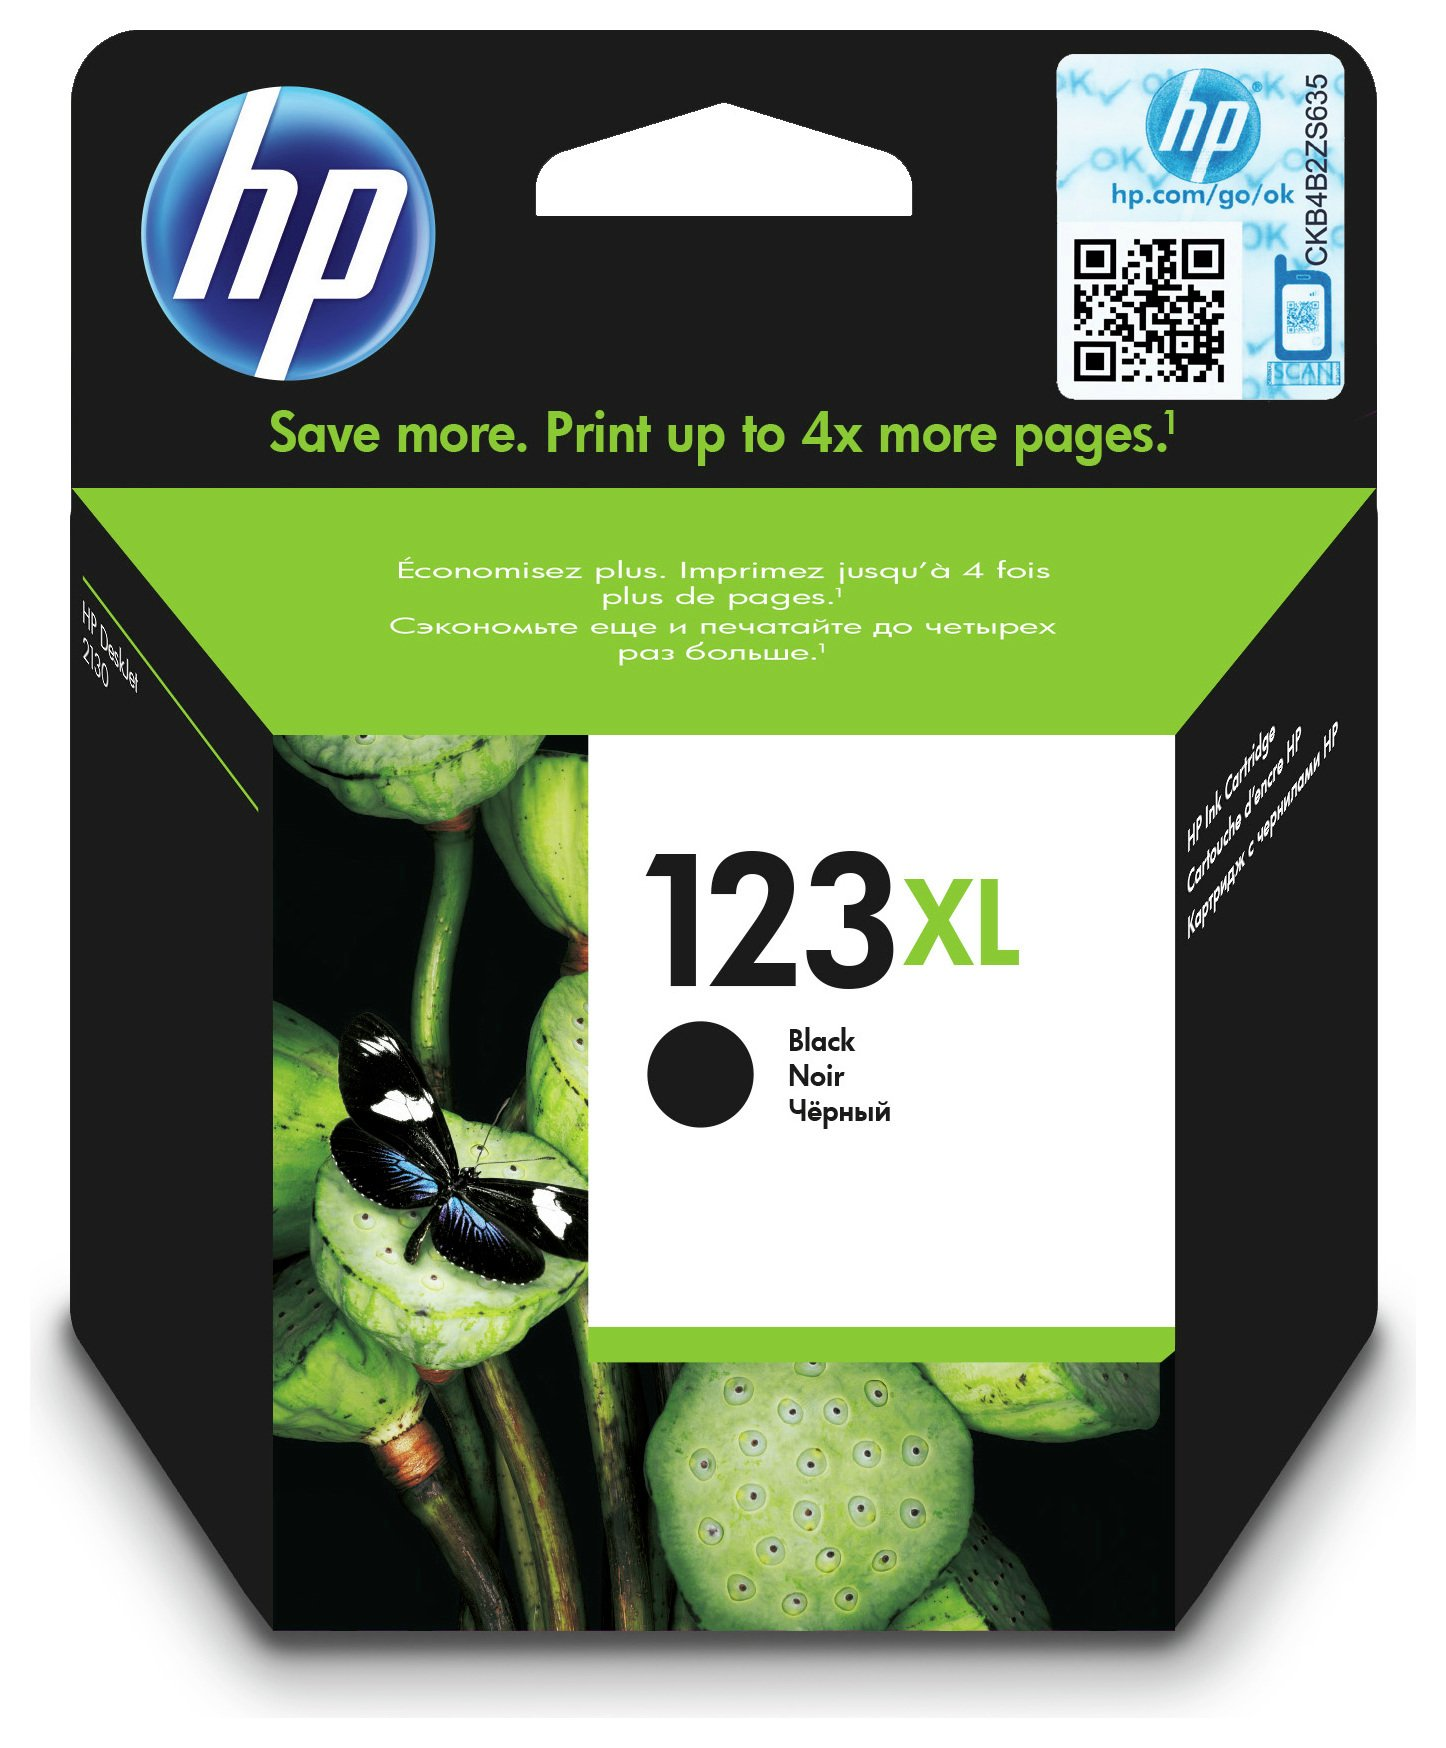 Image of HP 123XL Black LaserJet Toner Cartridge.